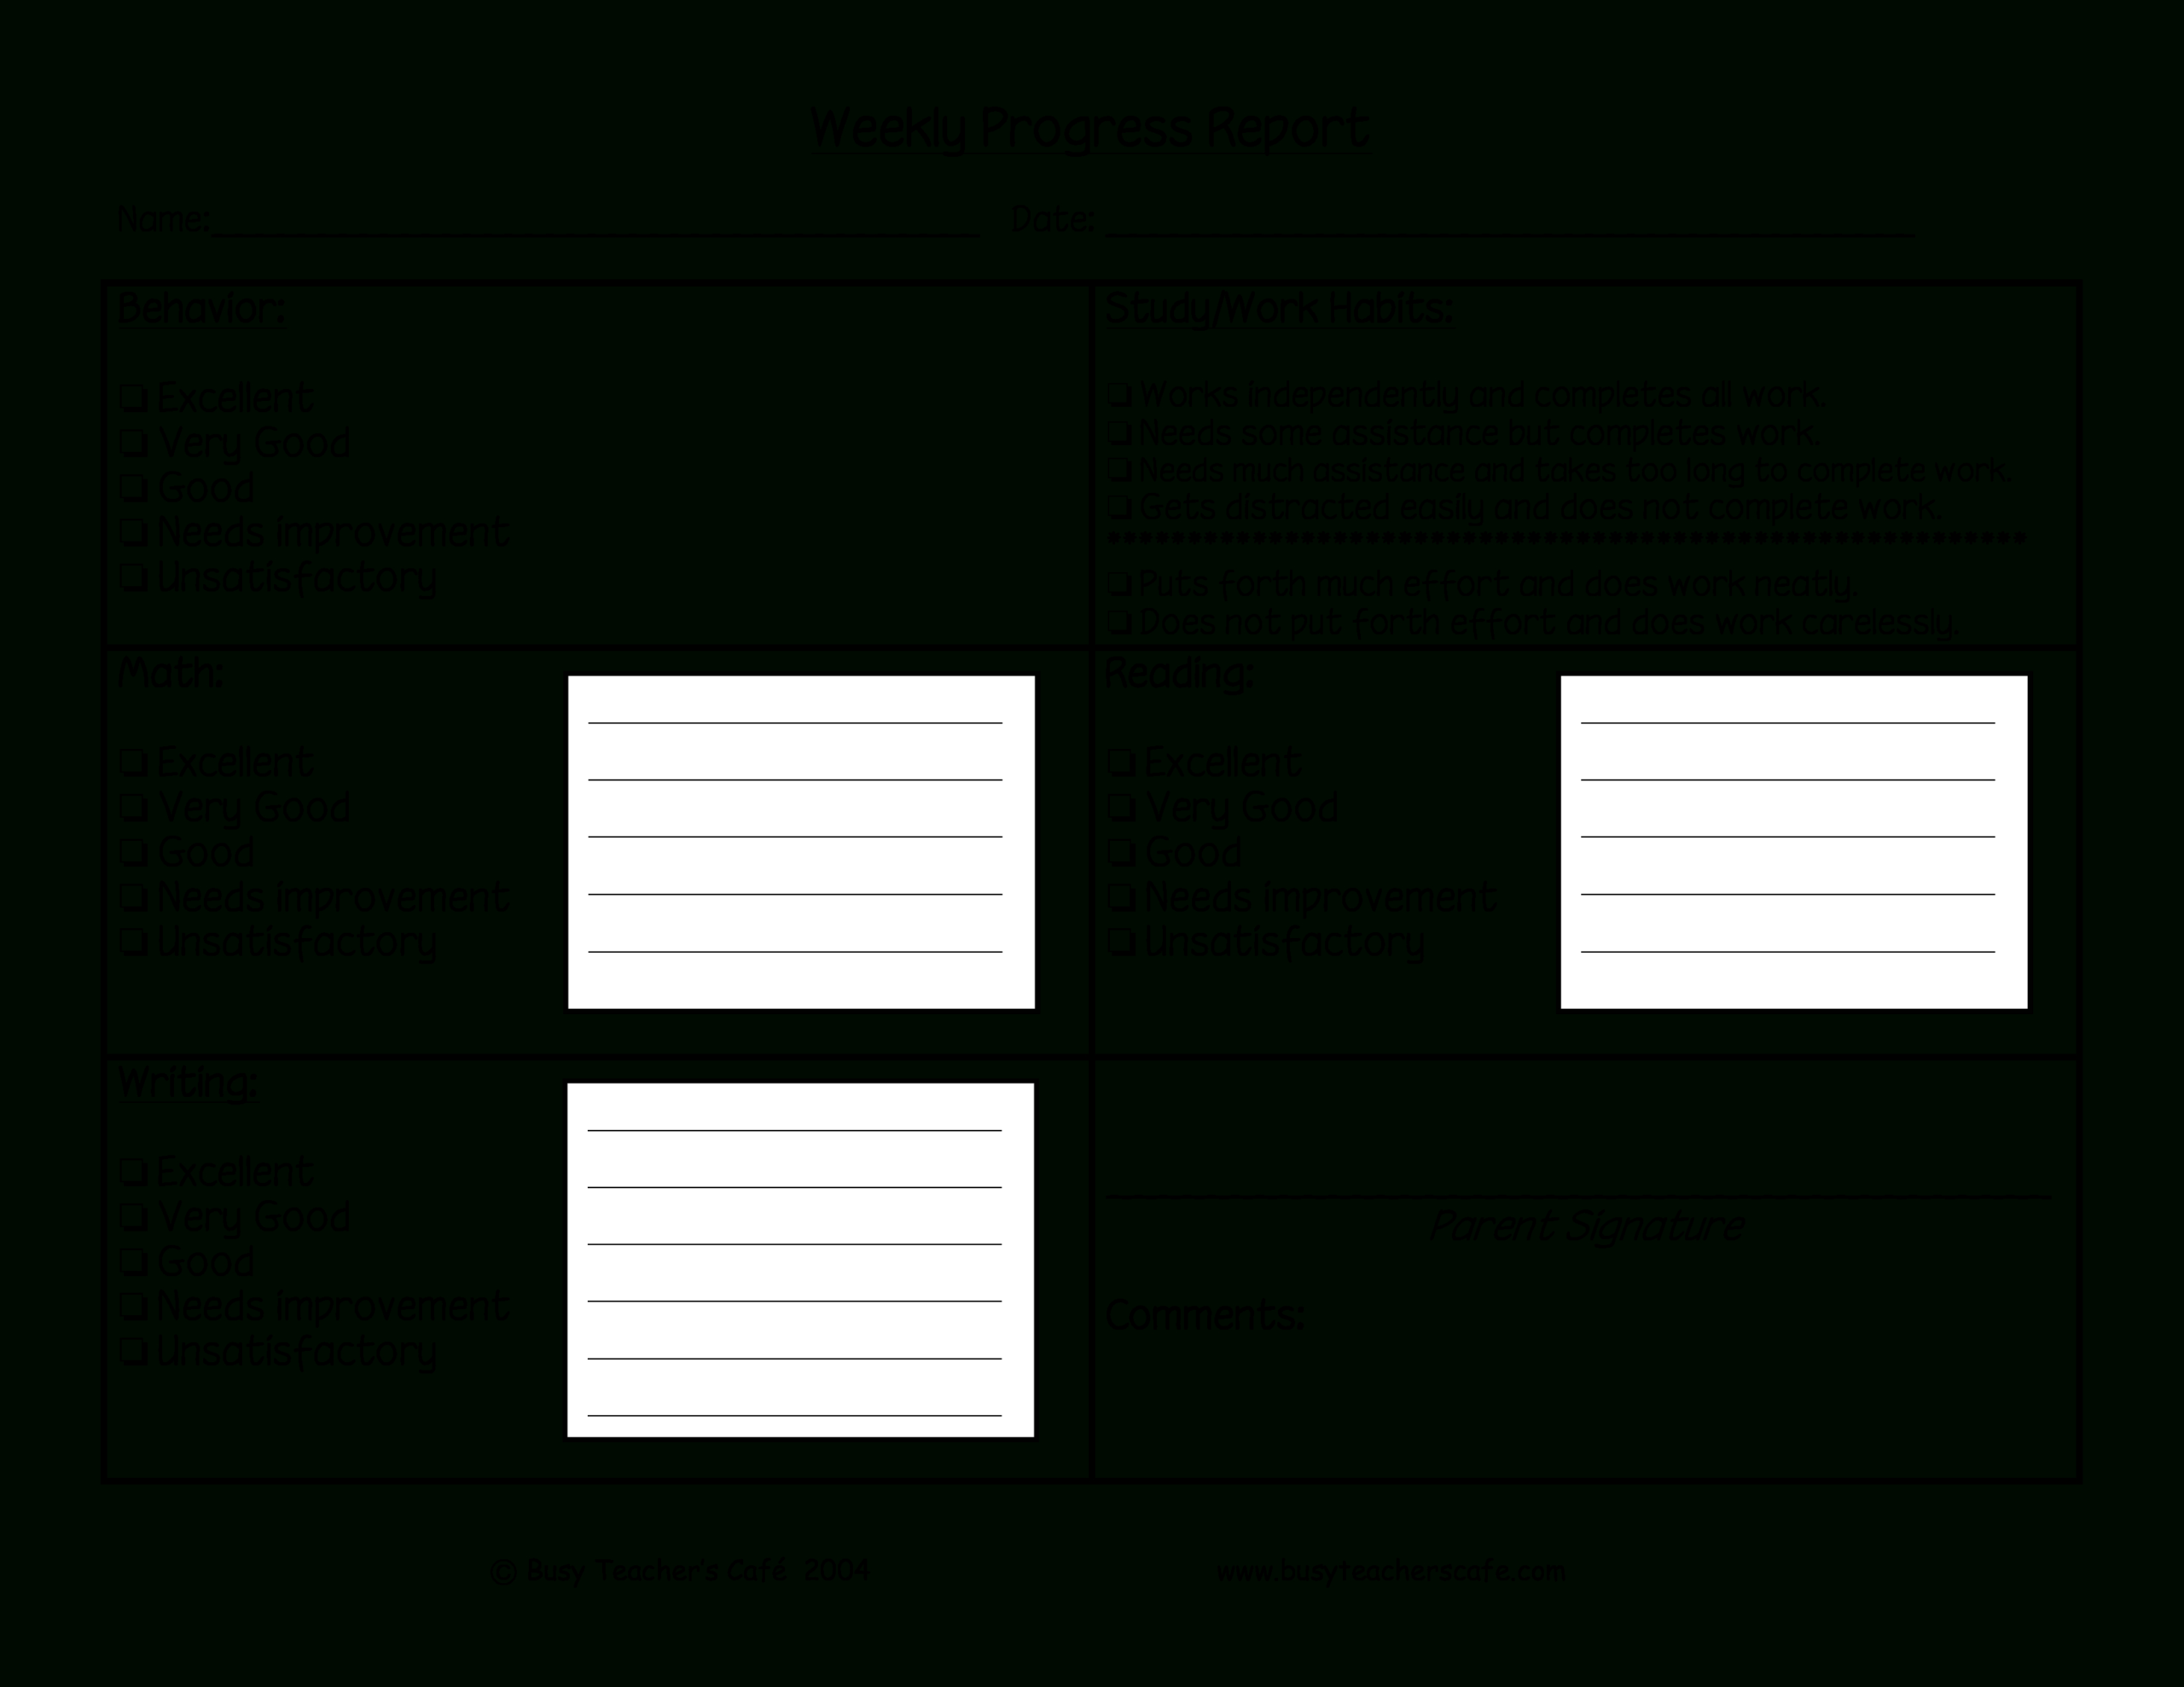 Weekly Student Behavior Report   Templates At With Behaviour Report Template